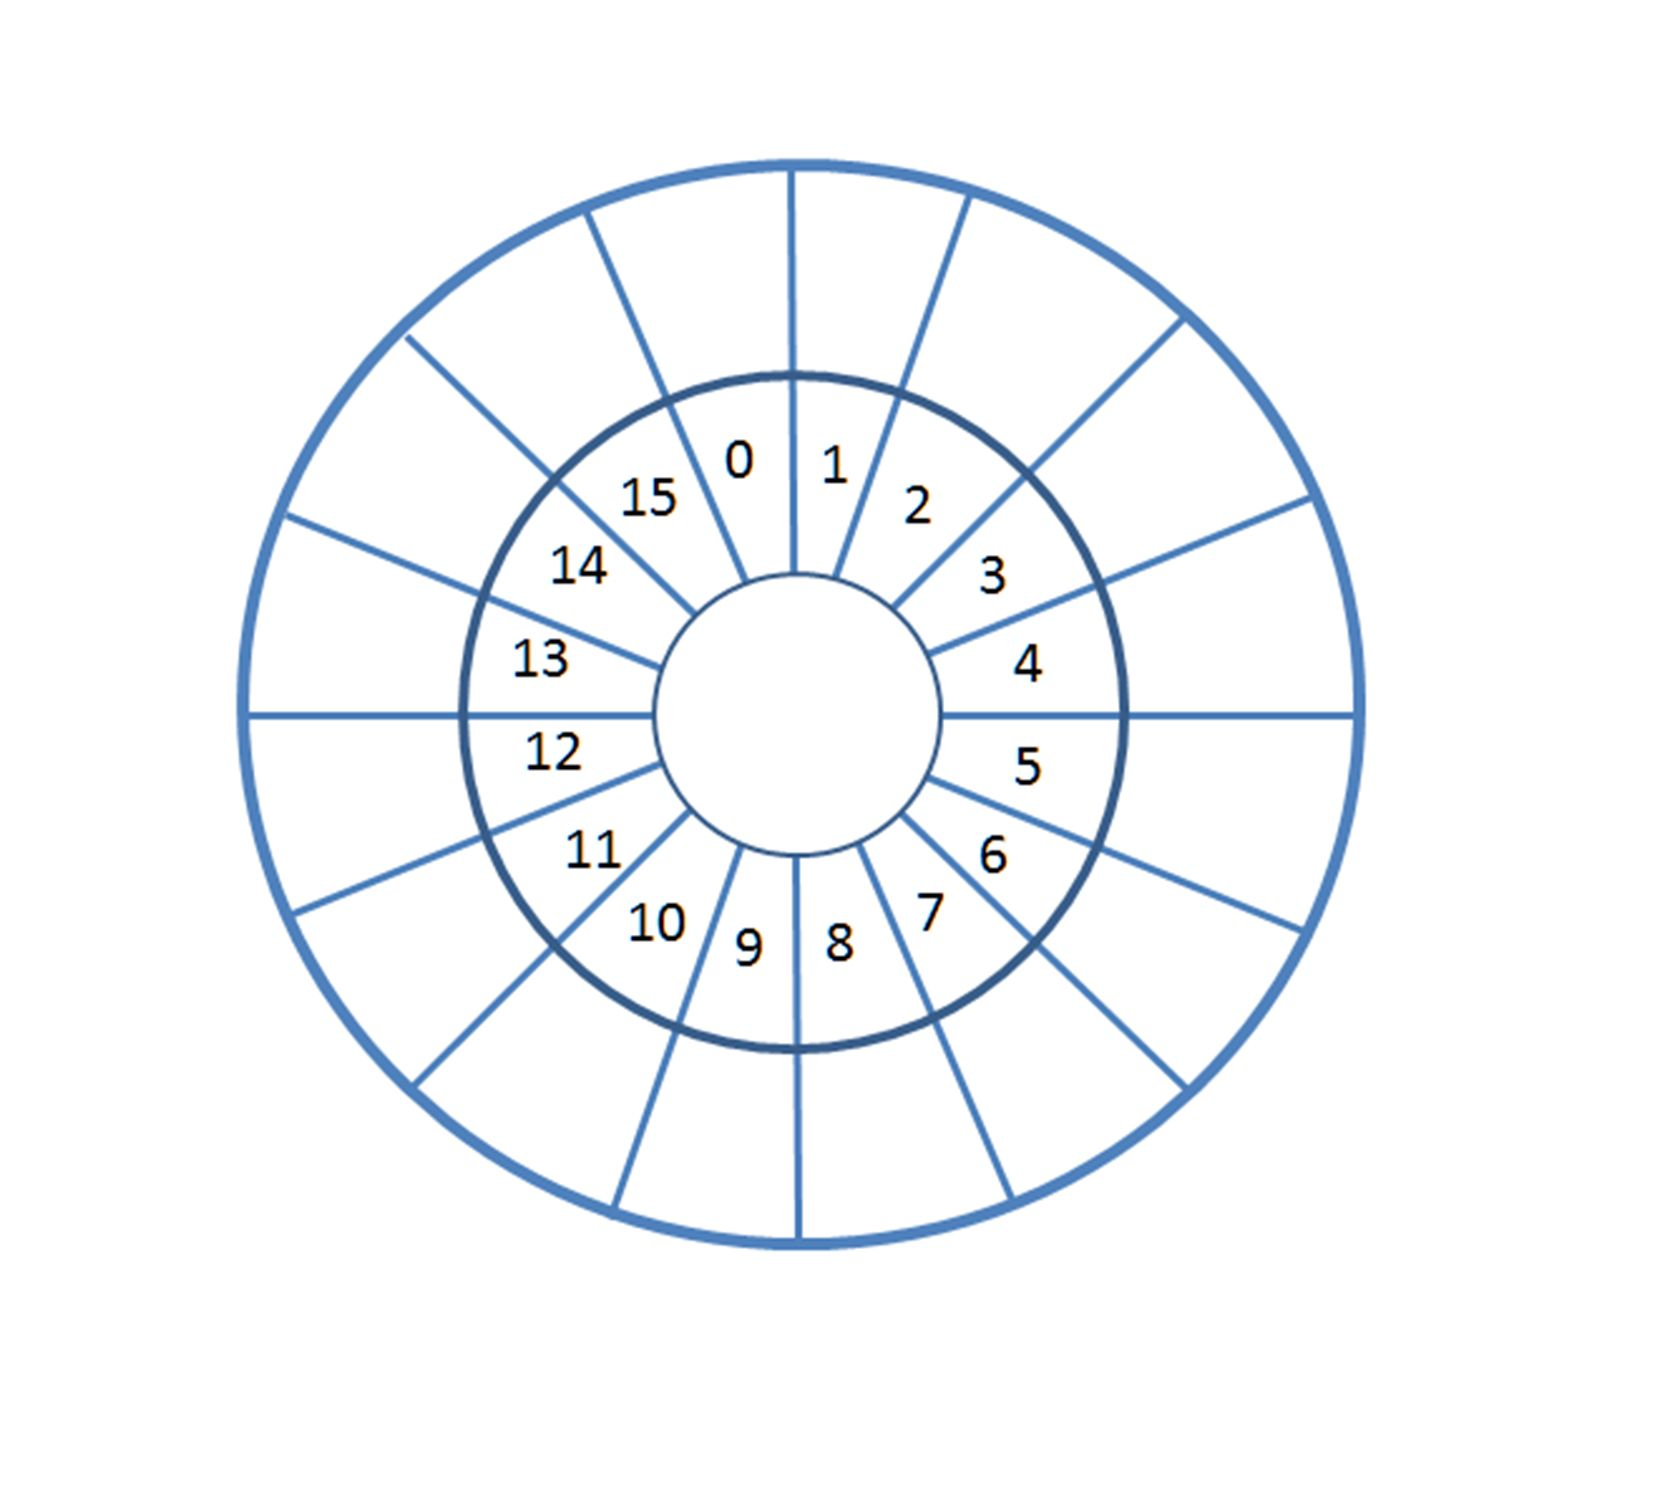 Multiplication Wheel Up To 15 Classical Conversations